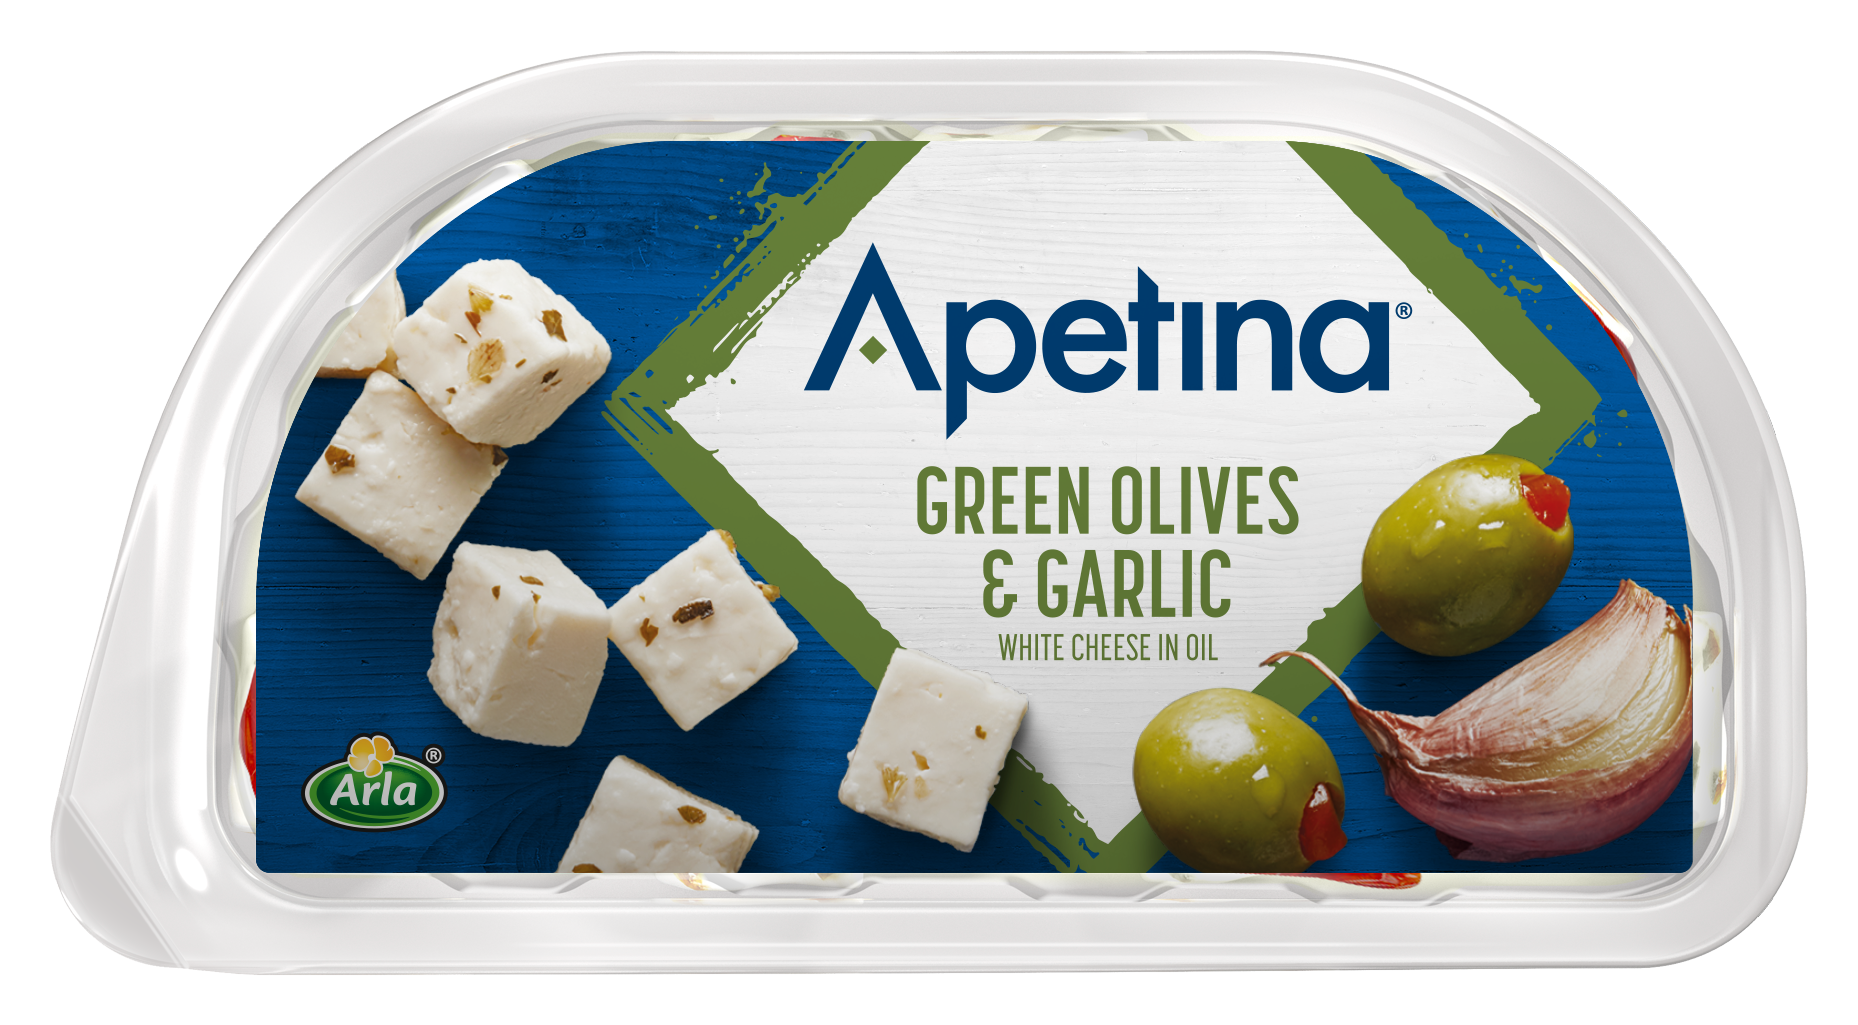 Apetina® Apetina white cheese cubes in oil green Olives & Garlic 100 g